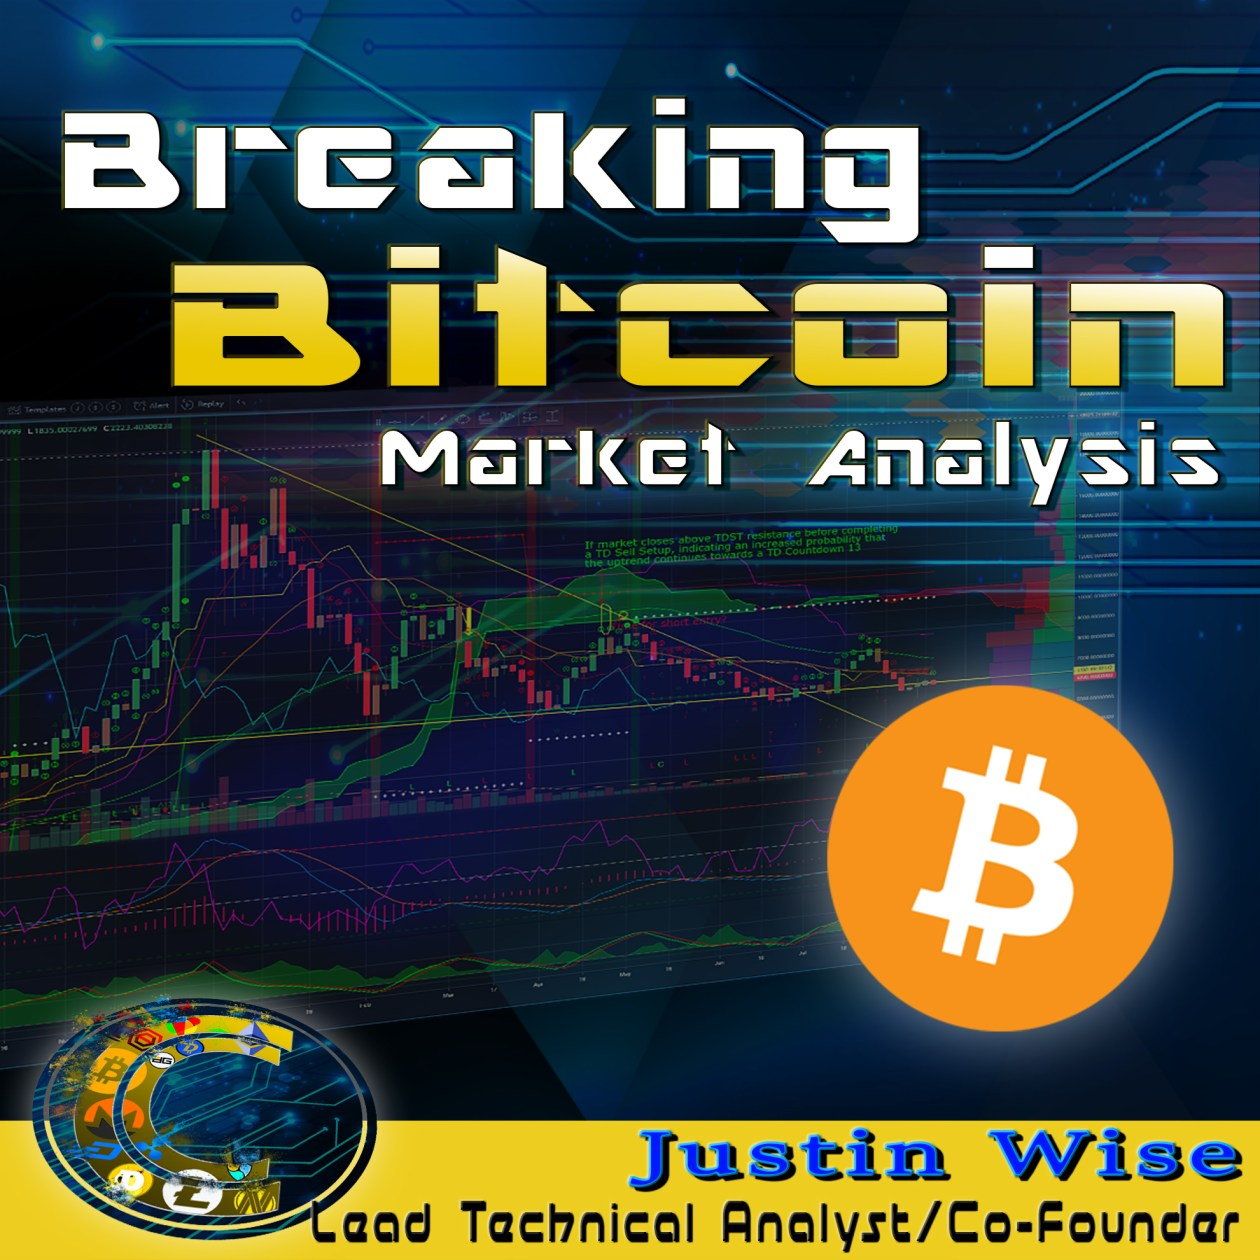 breaking bitcoin show logo graphic with the words over chart background and bitcoin logo below words and at bottom justin wise's name and title with cracking crypto logo to the left